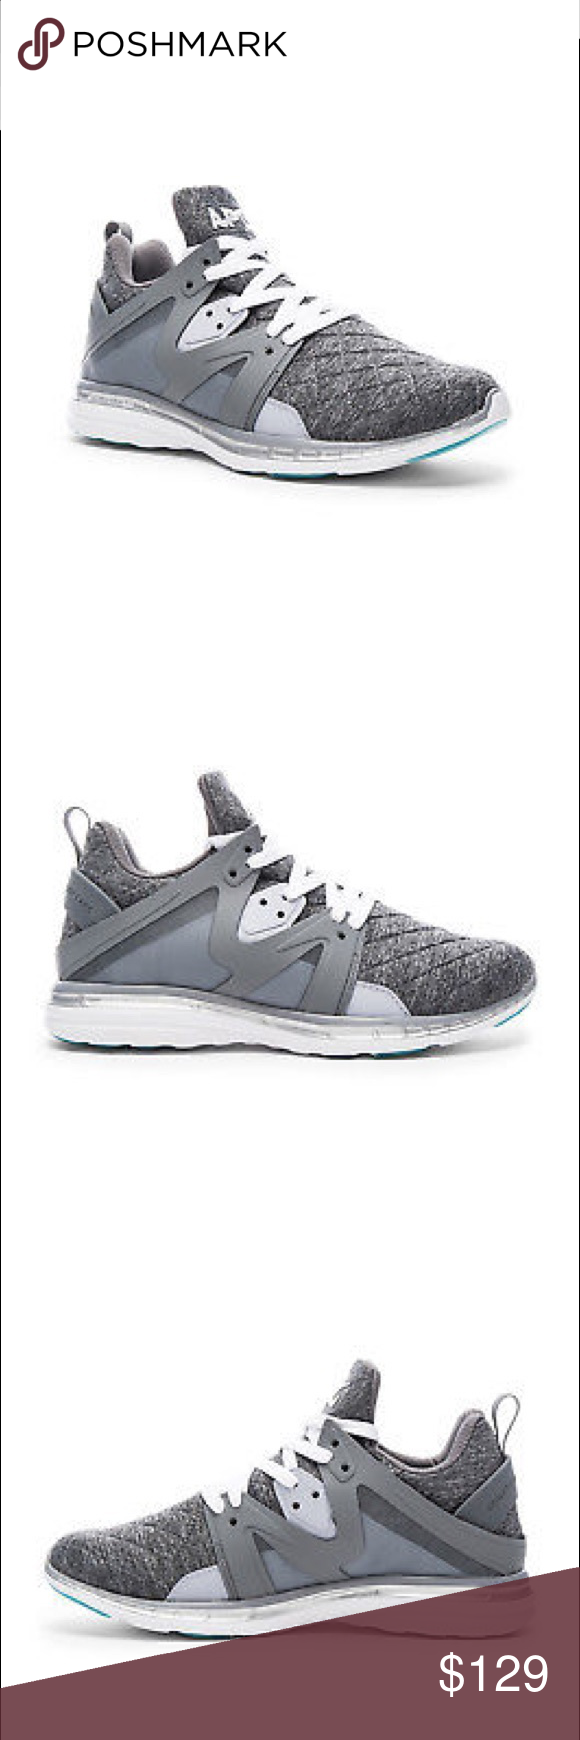 f0b4362a689 NEW APL Athletic Propulsion Lab Shoes Ascend Style  Ascend Color  Cosmic  Grey   Metallic Silver The shoes come with their original box Firm  lululemon ...